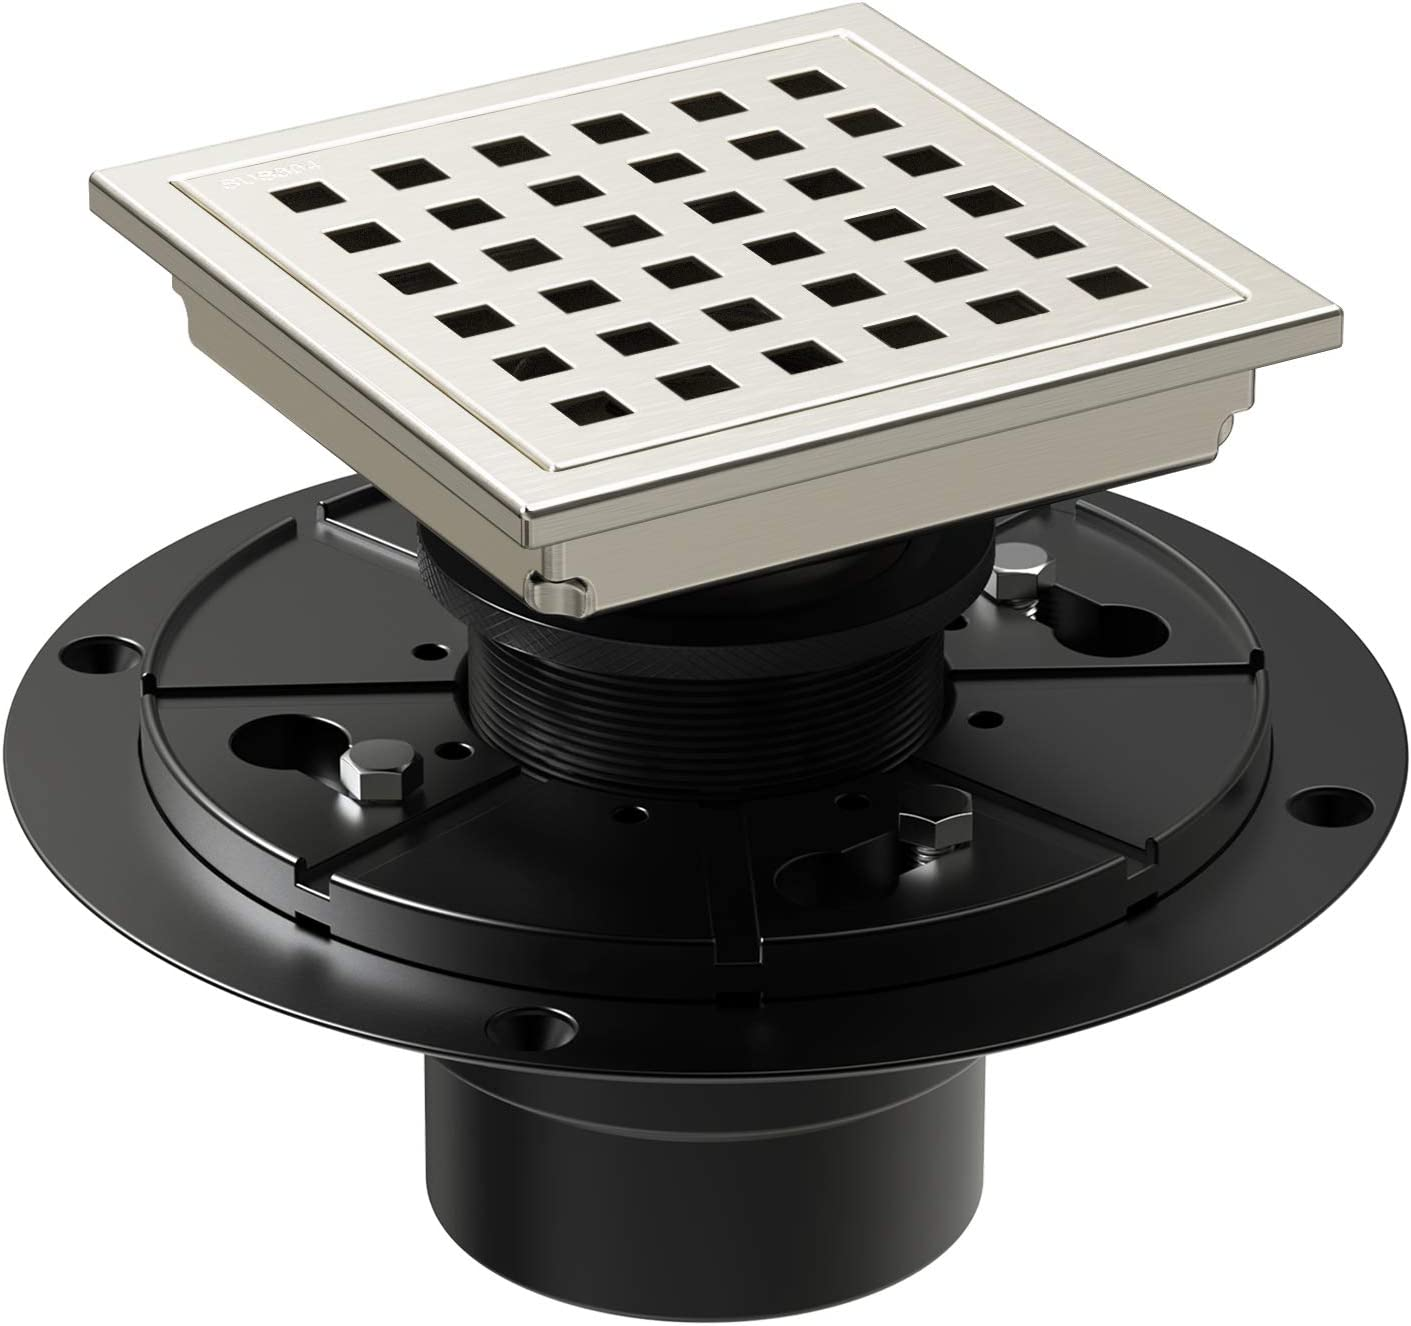 WEBANG 4 Inch Square Shower Floor Drain With Flange,Quadrato Pattern Grate Removable,Food-grade SUS 304 Stainless Steel,WATERMARK&CUPC Certified,Brushed Nickel